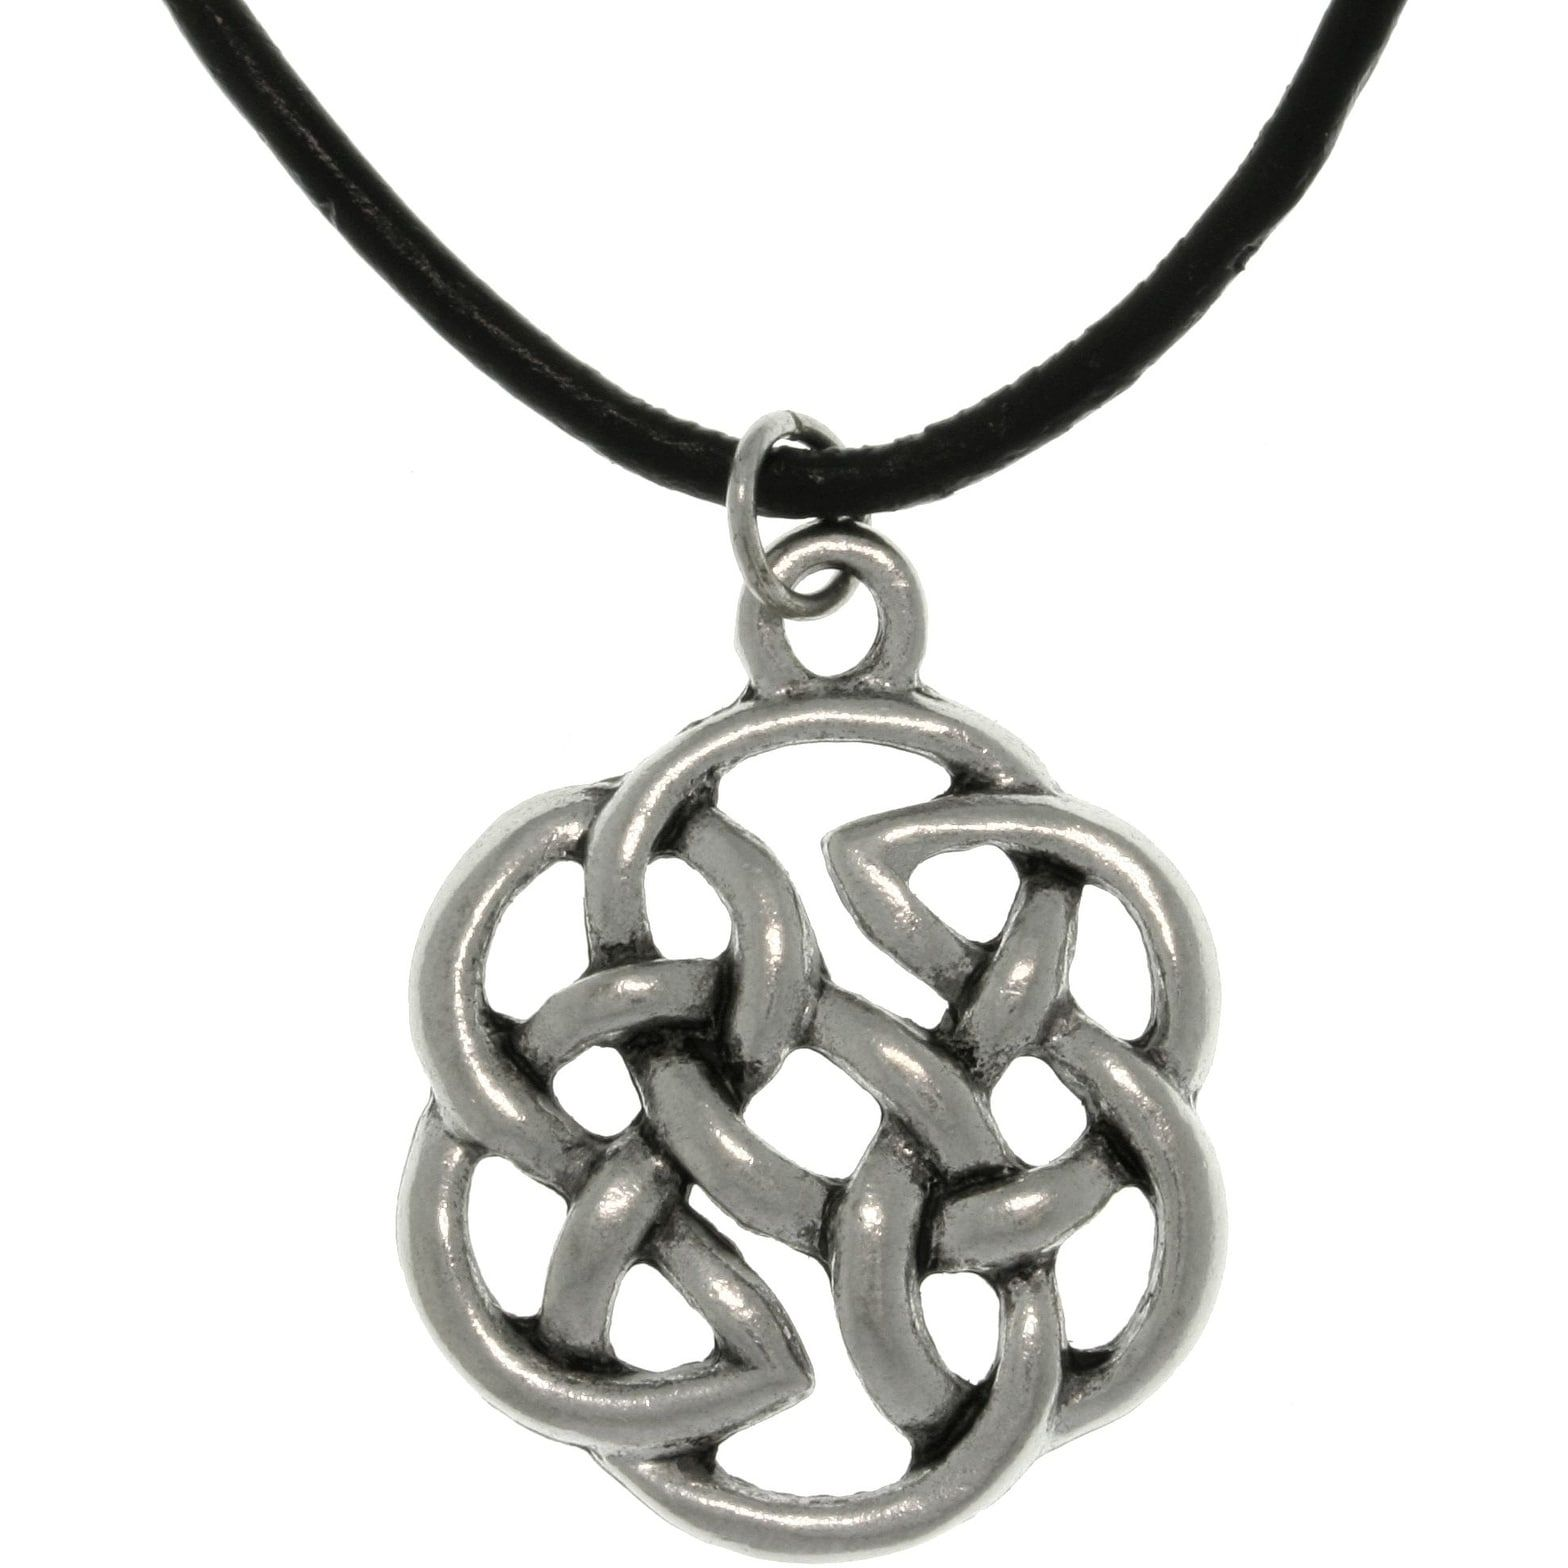 walk celtic pendant warrior collection va alexandria irish celti jewelry bands the wedding